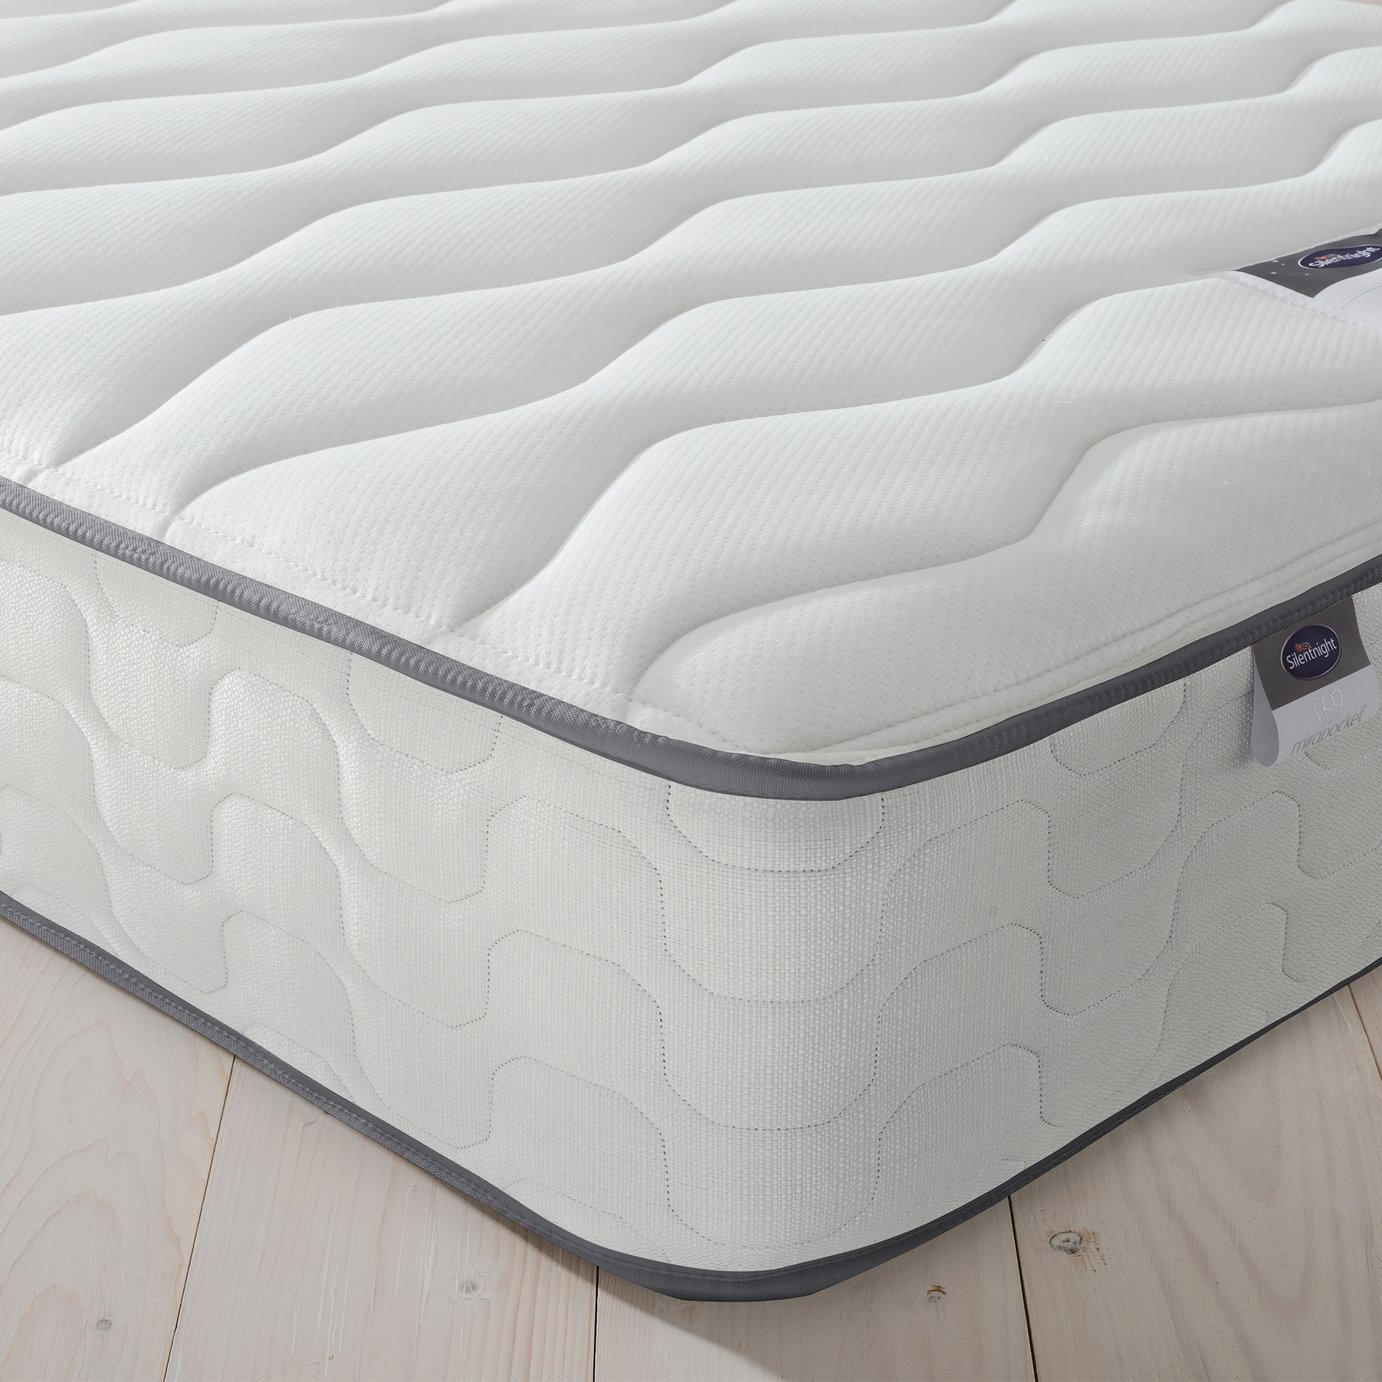 Silentnight - Harding Pocket Comfort - Single Mattress at Argos